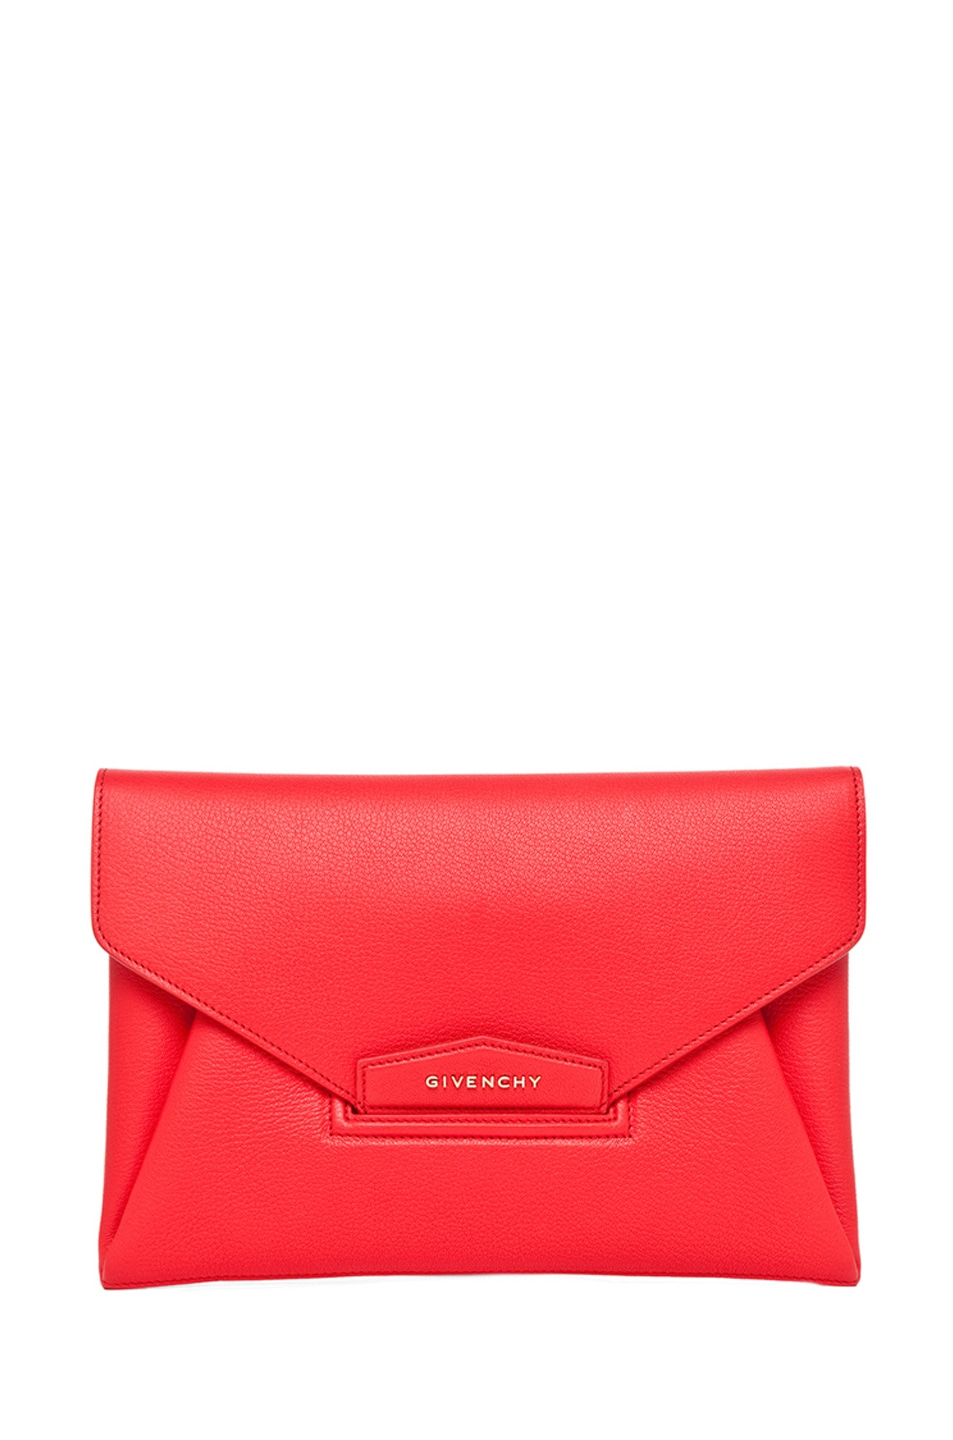 Image 1 of GIVENCHY Medium Antigona Clutch in Red